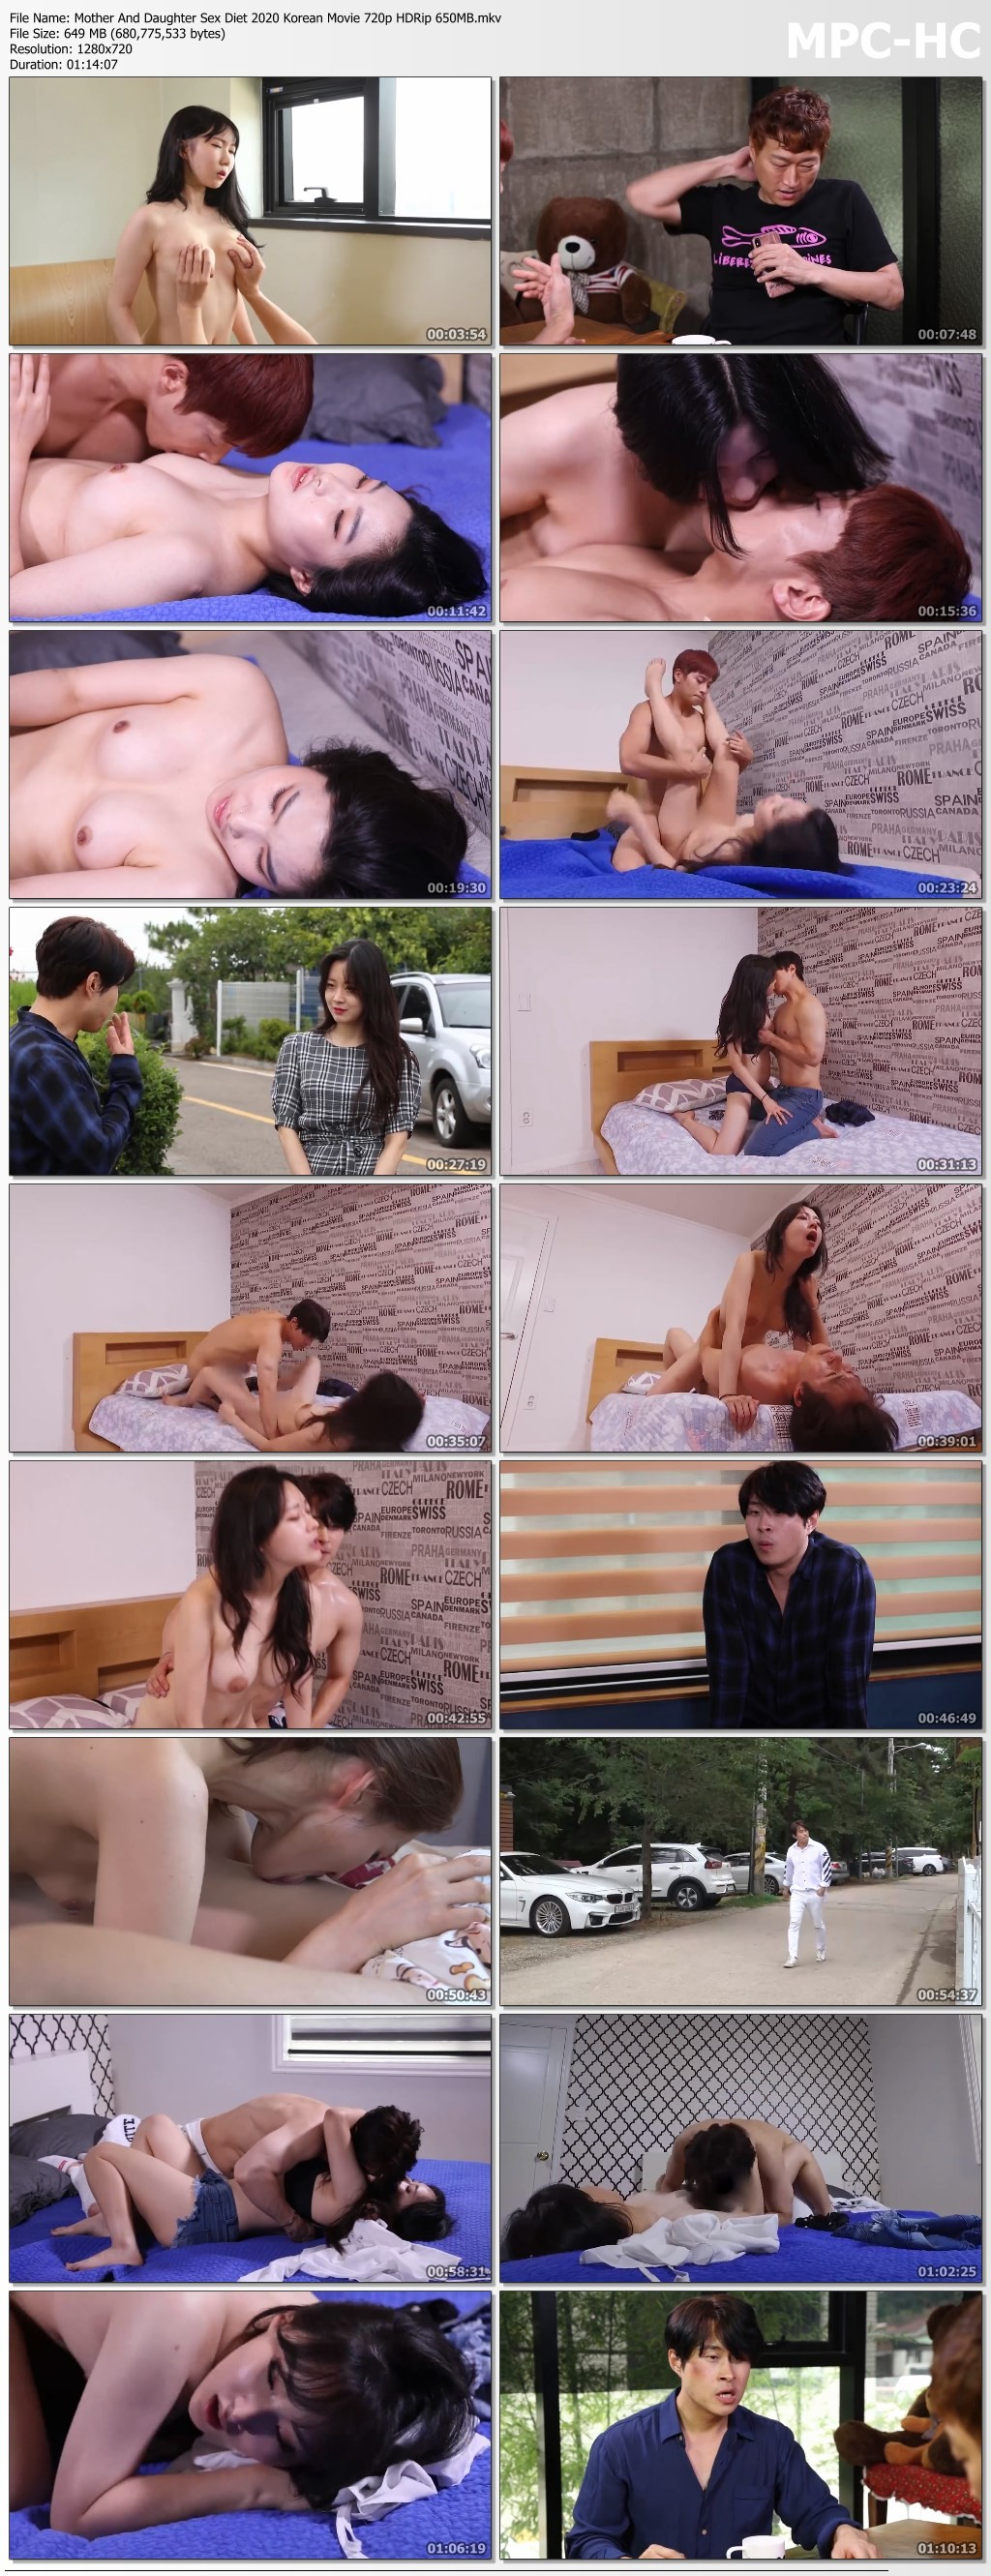 wIrSQ - 18+ Mother And Daughter Sex Diet 2020 Korean Full Hot Movie 720p HDRip 700MB x264 AAC